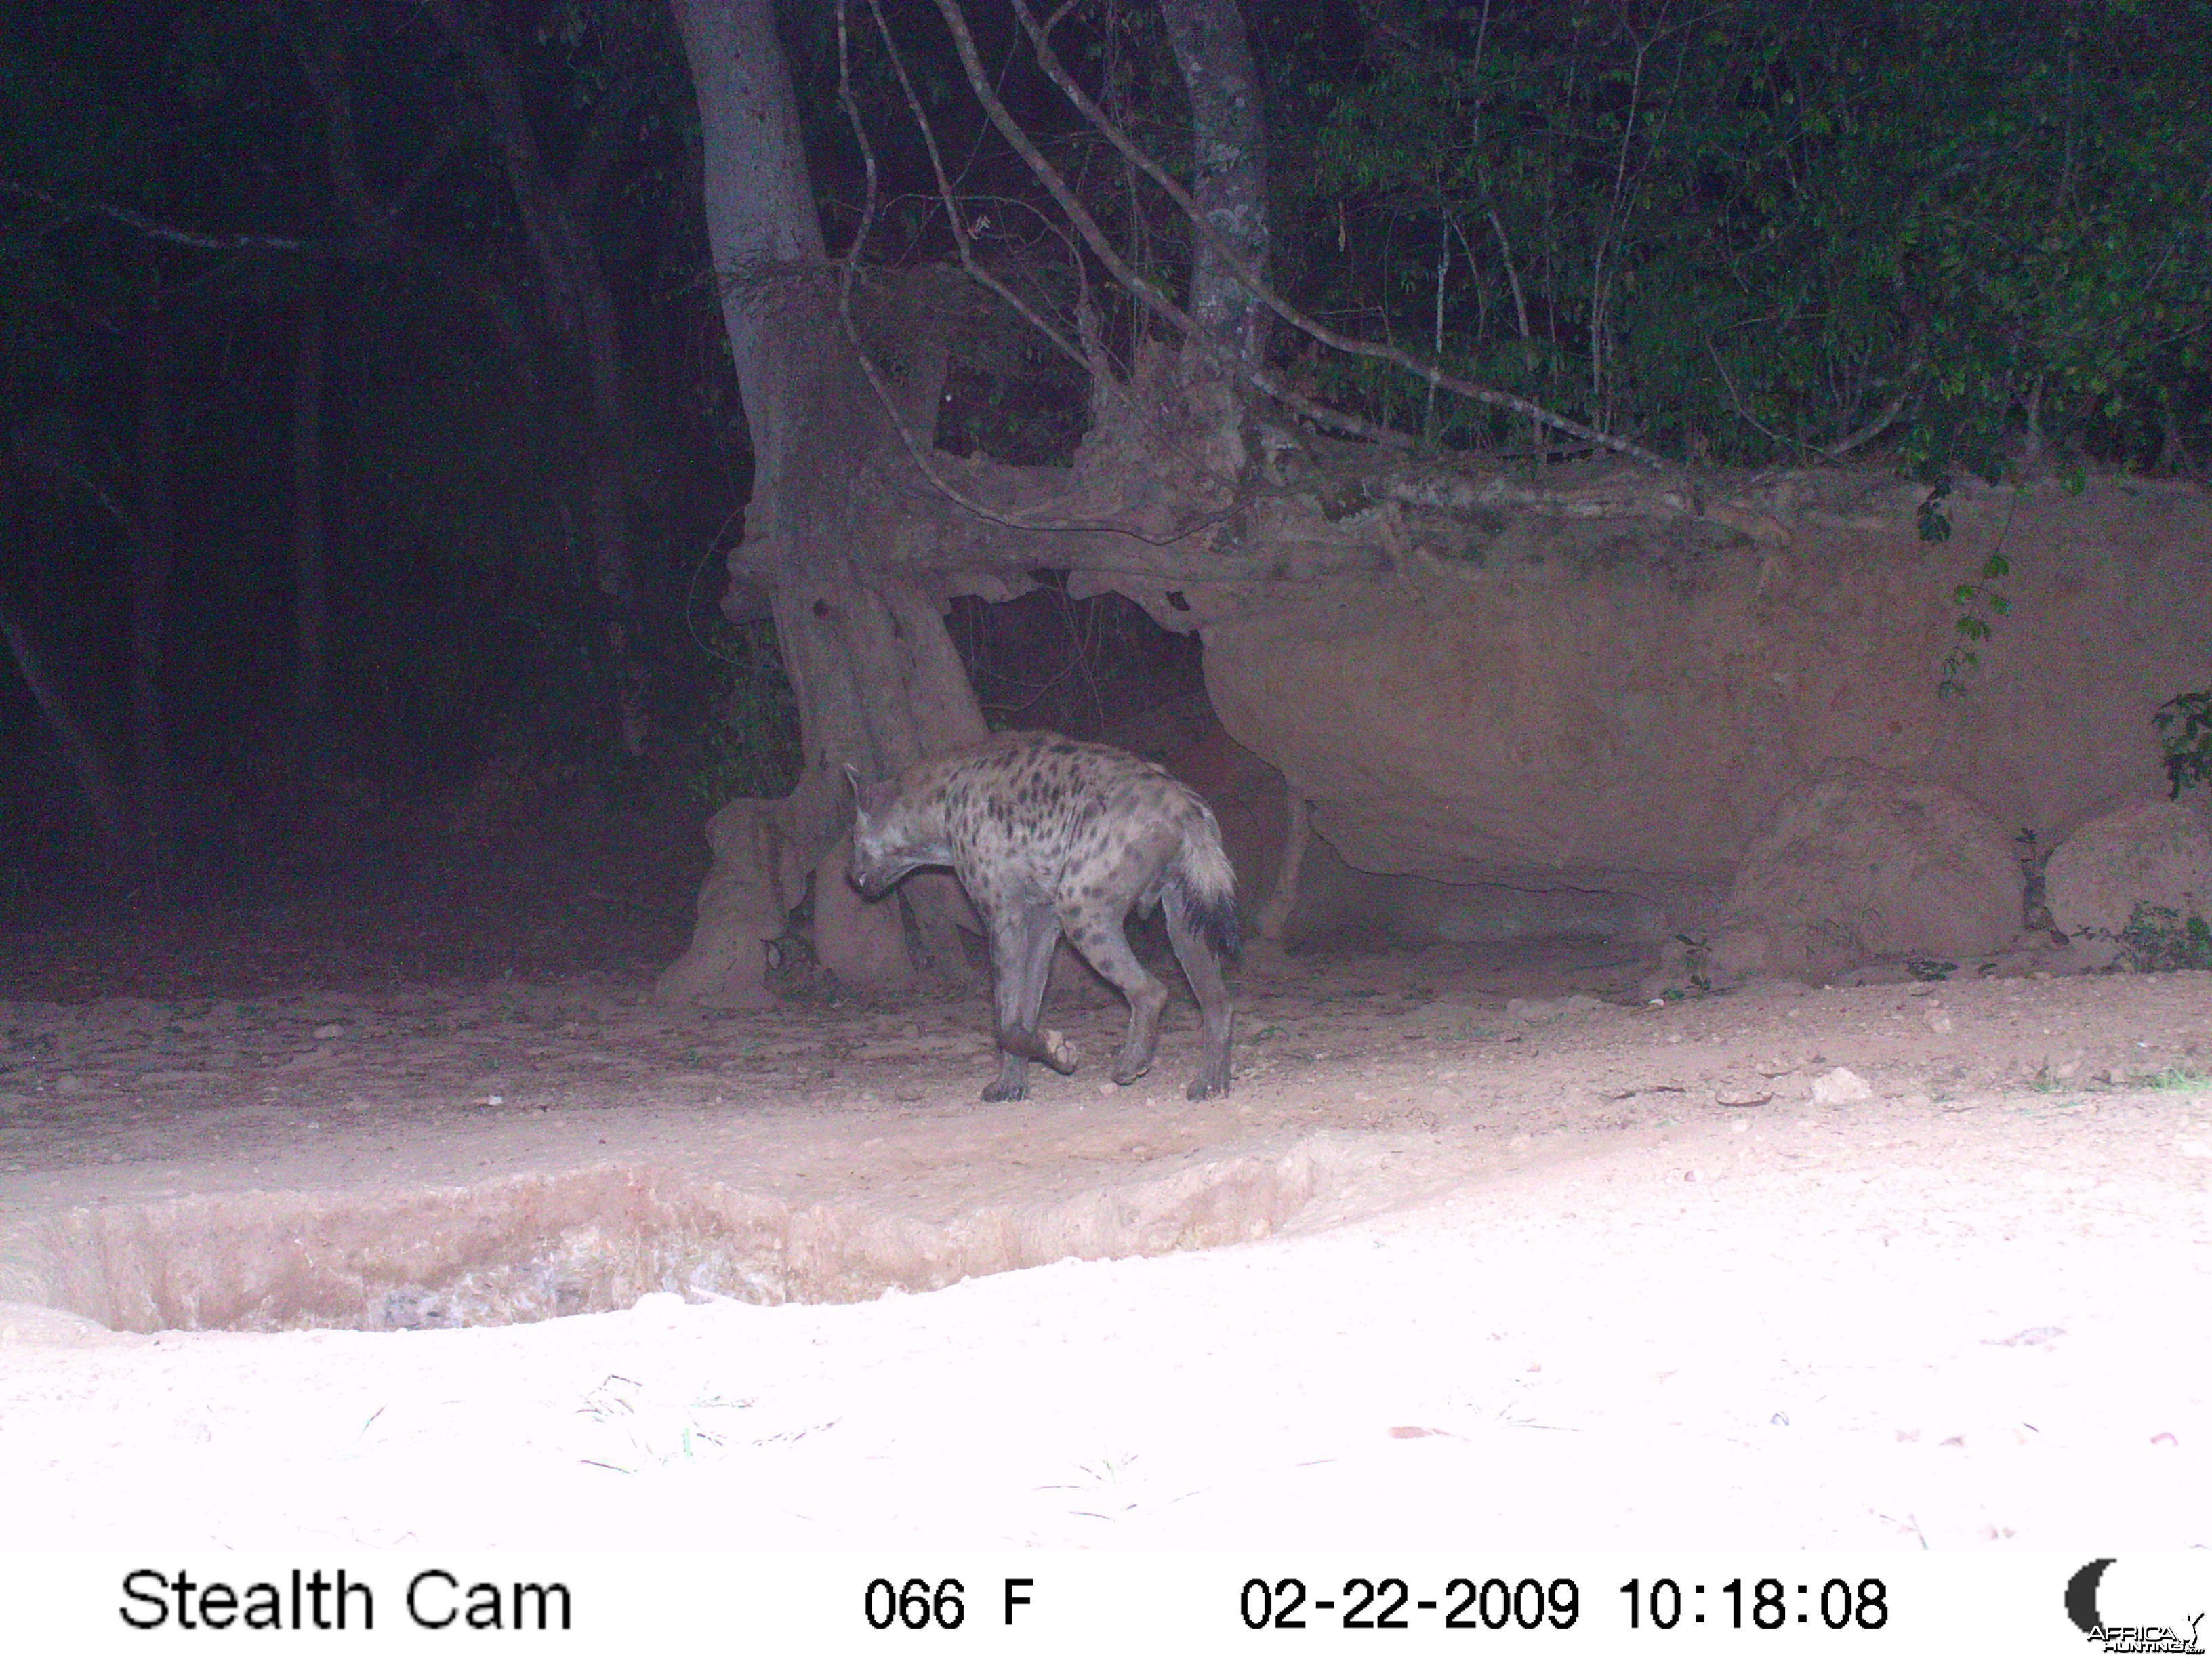 Spotted Hyena on Trail Camera